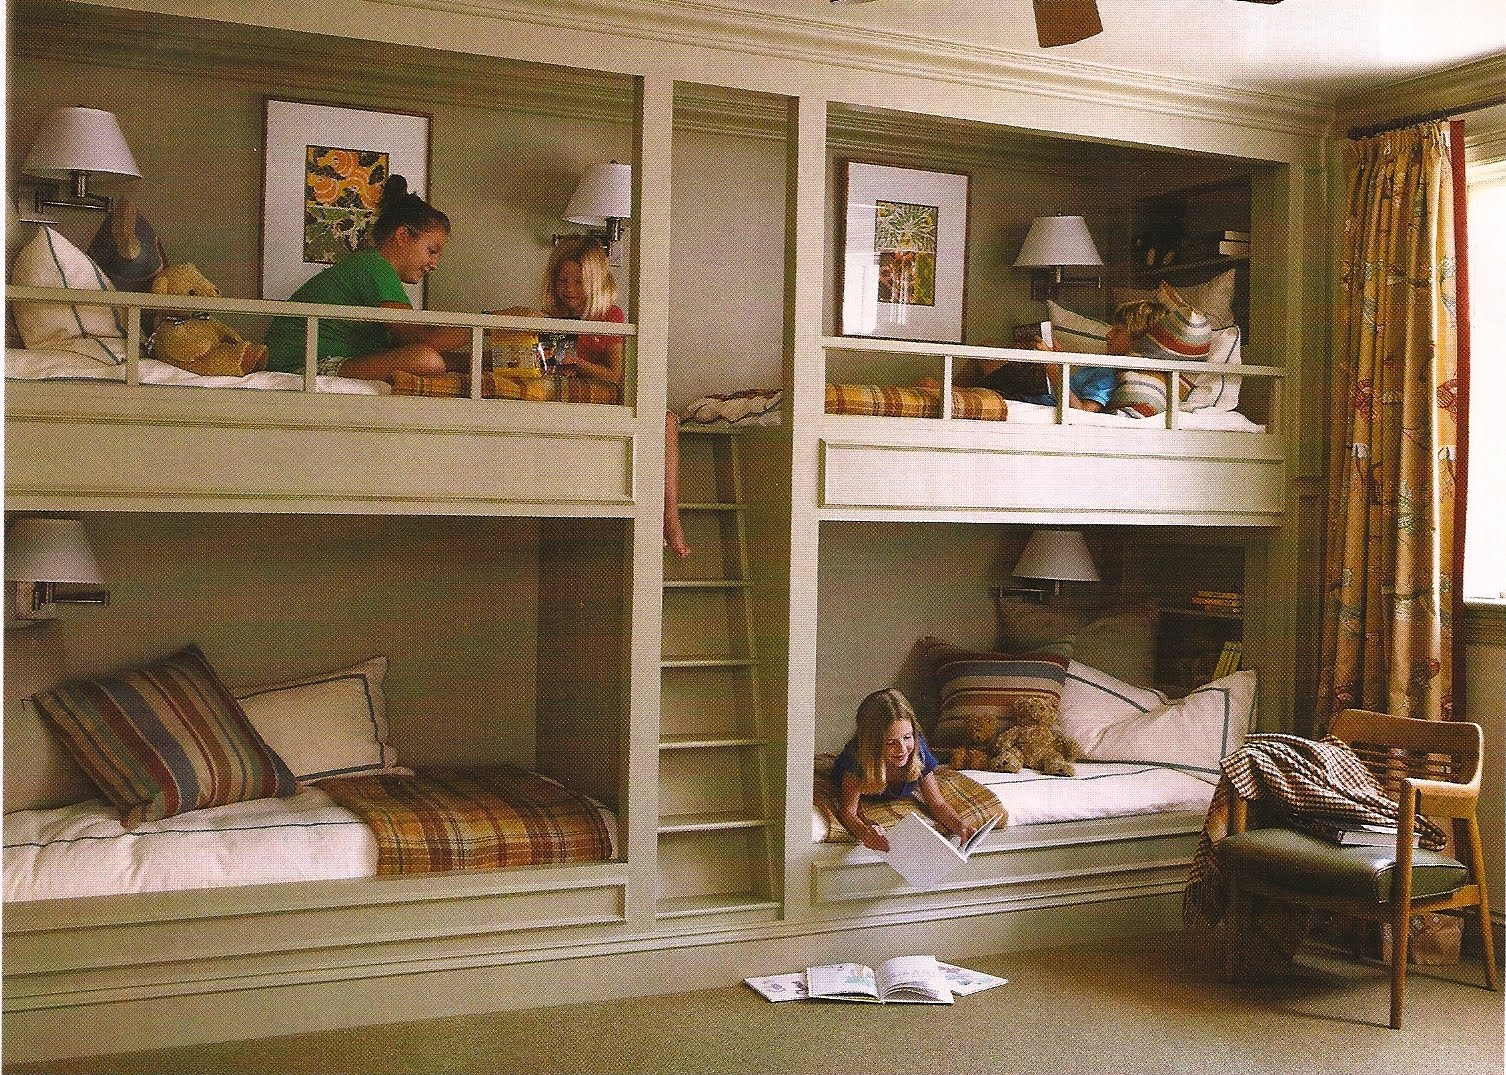 Built In Beds On Pinterest Modern Bunk Beds Bunk Bed: 4 beds in one room